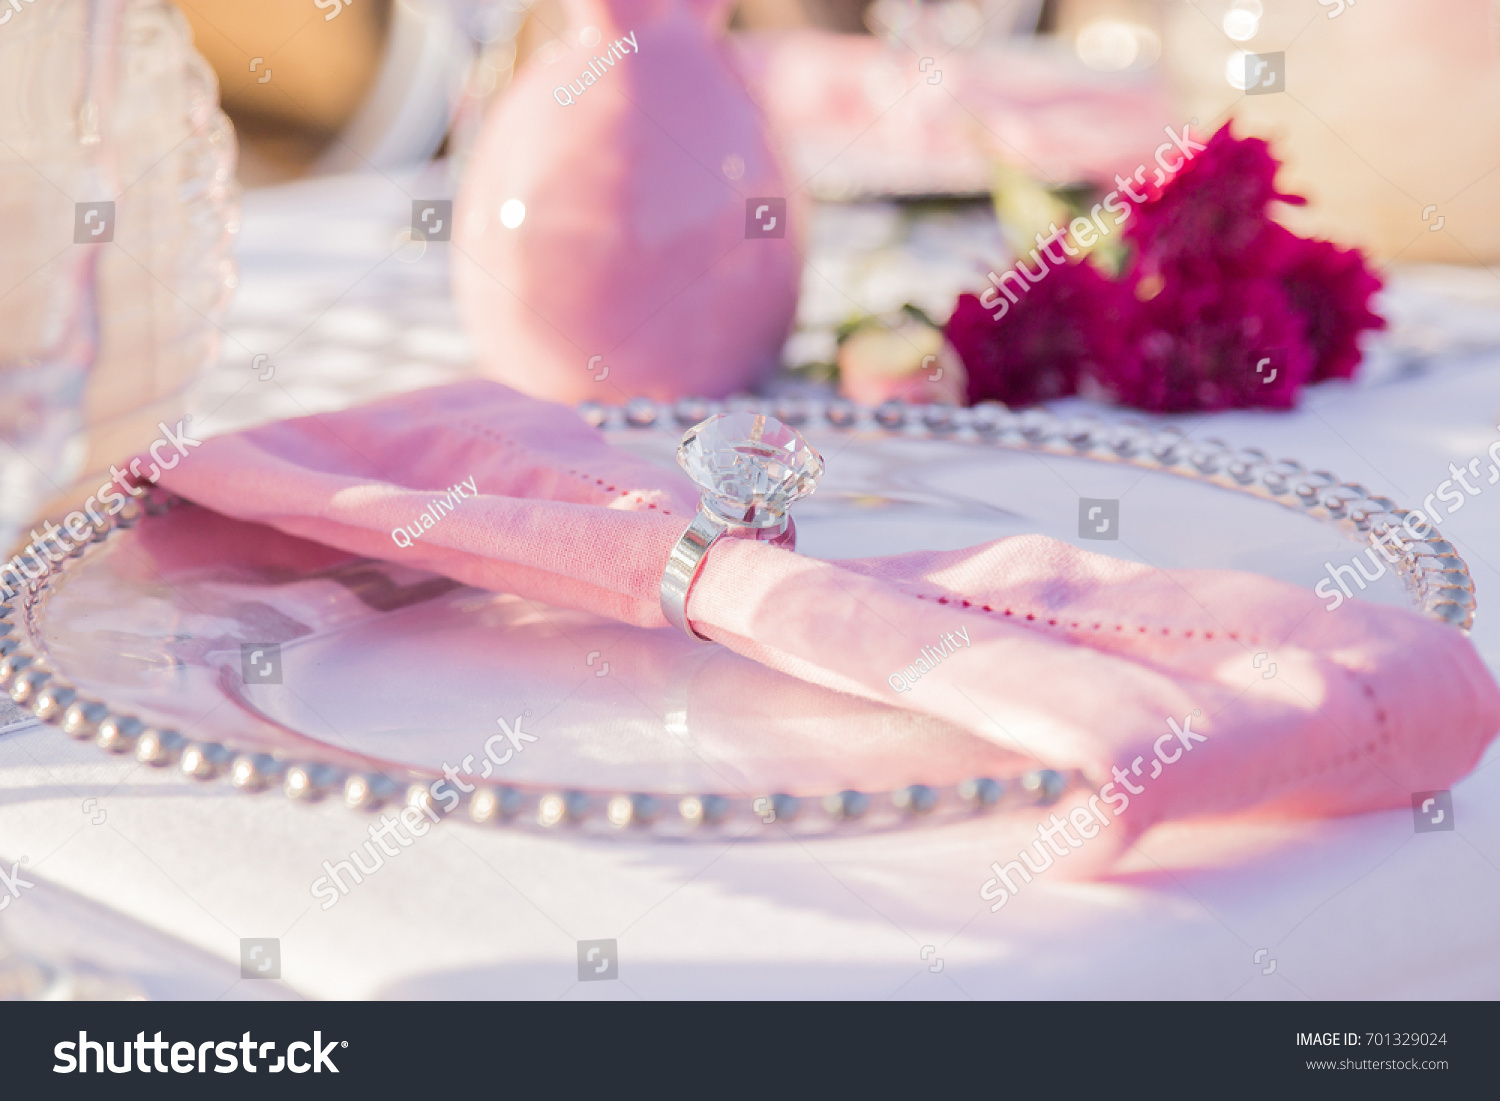 Pink Napkin On White Decorative Plate Stock Photo (Download Now ...